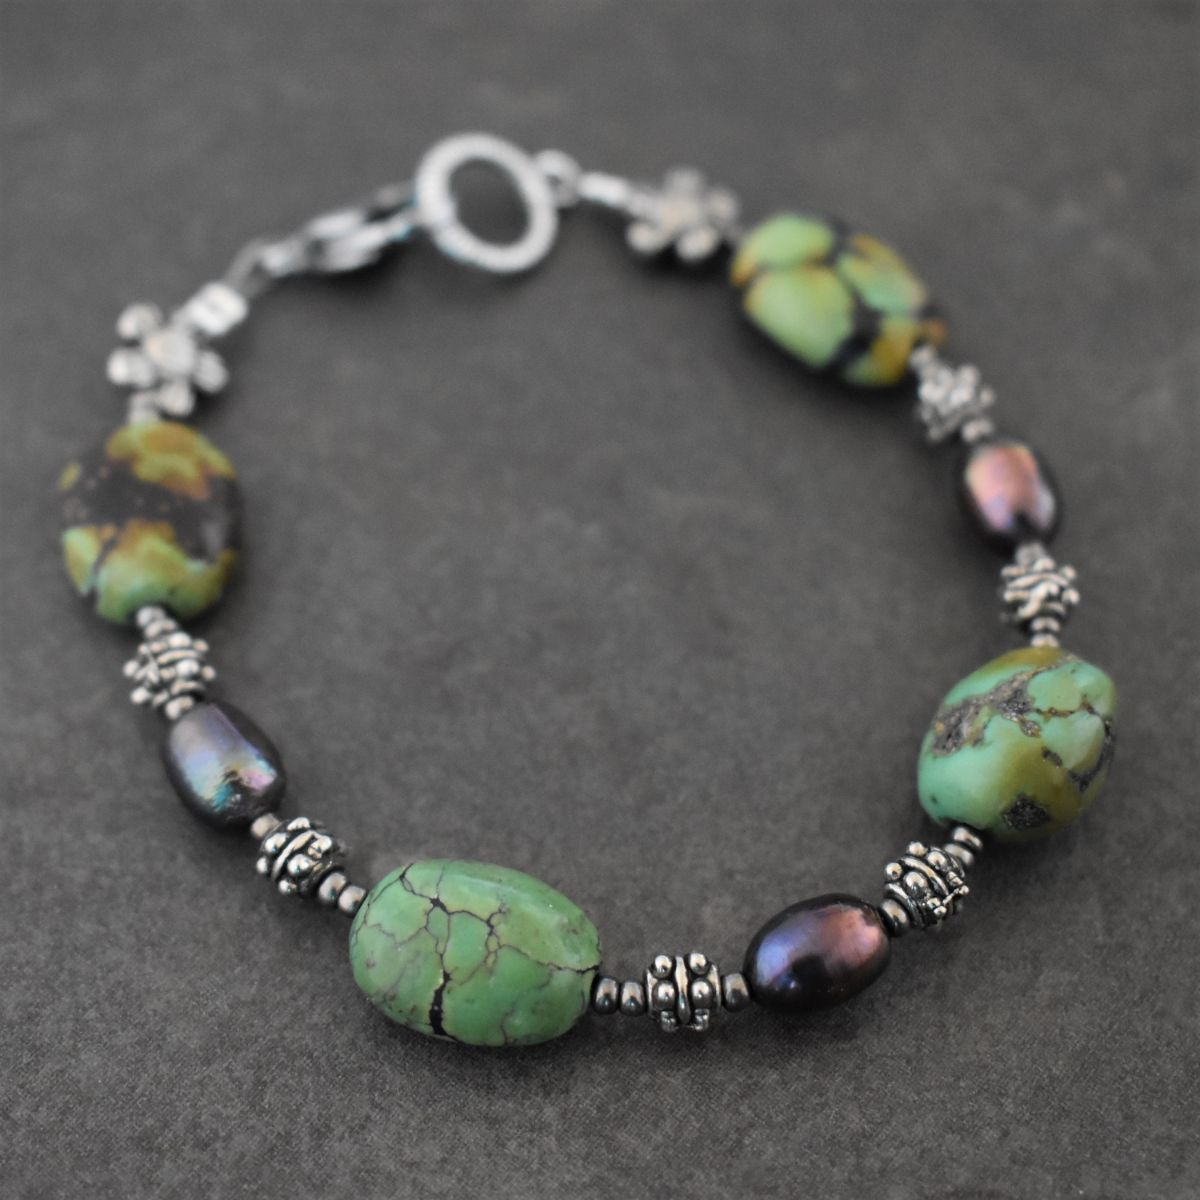 Green turquoise and purple Peacock pearl bracelet